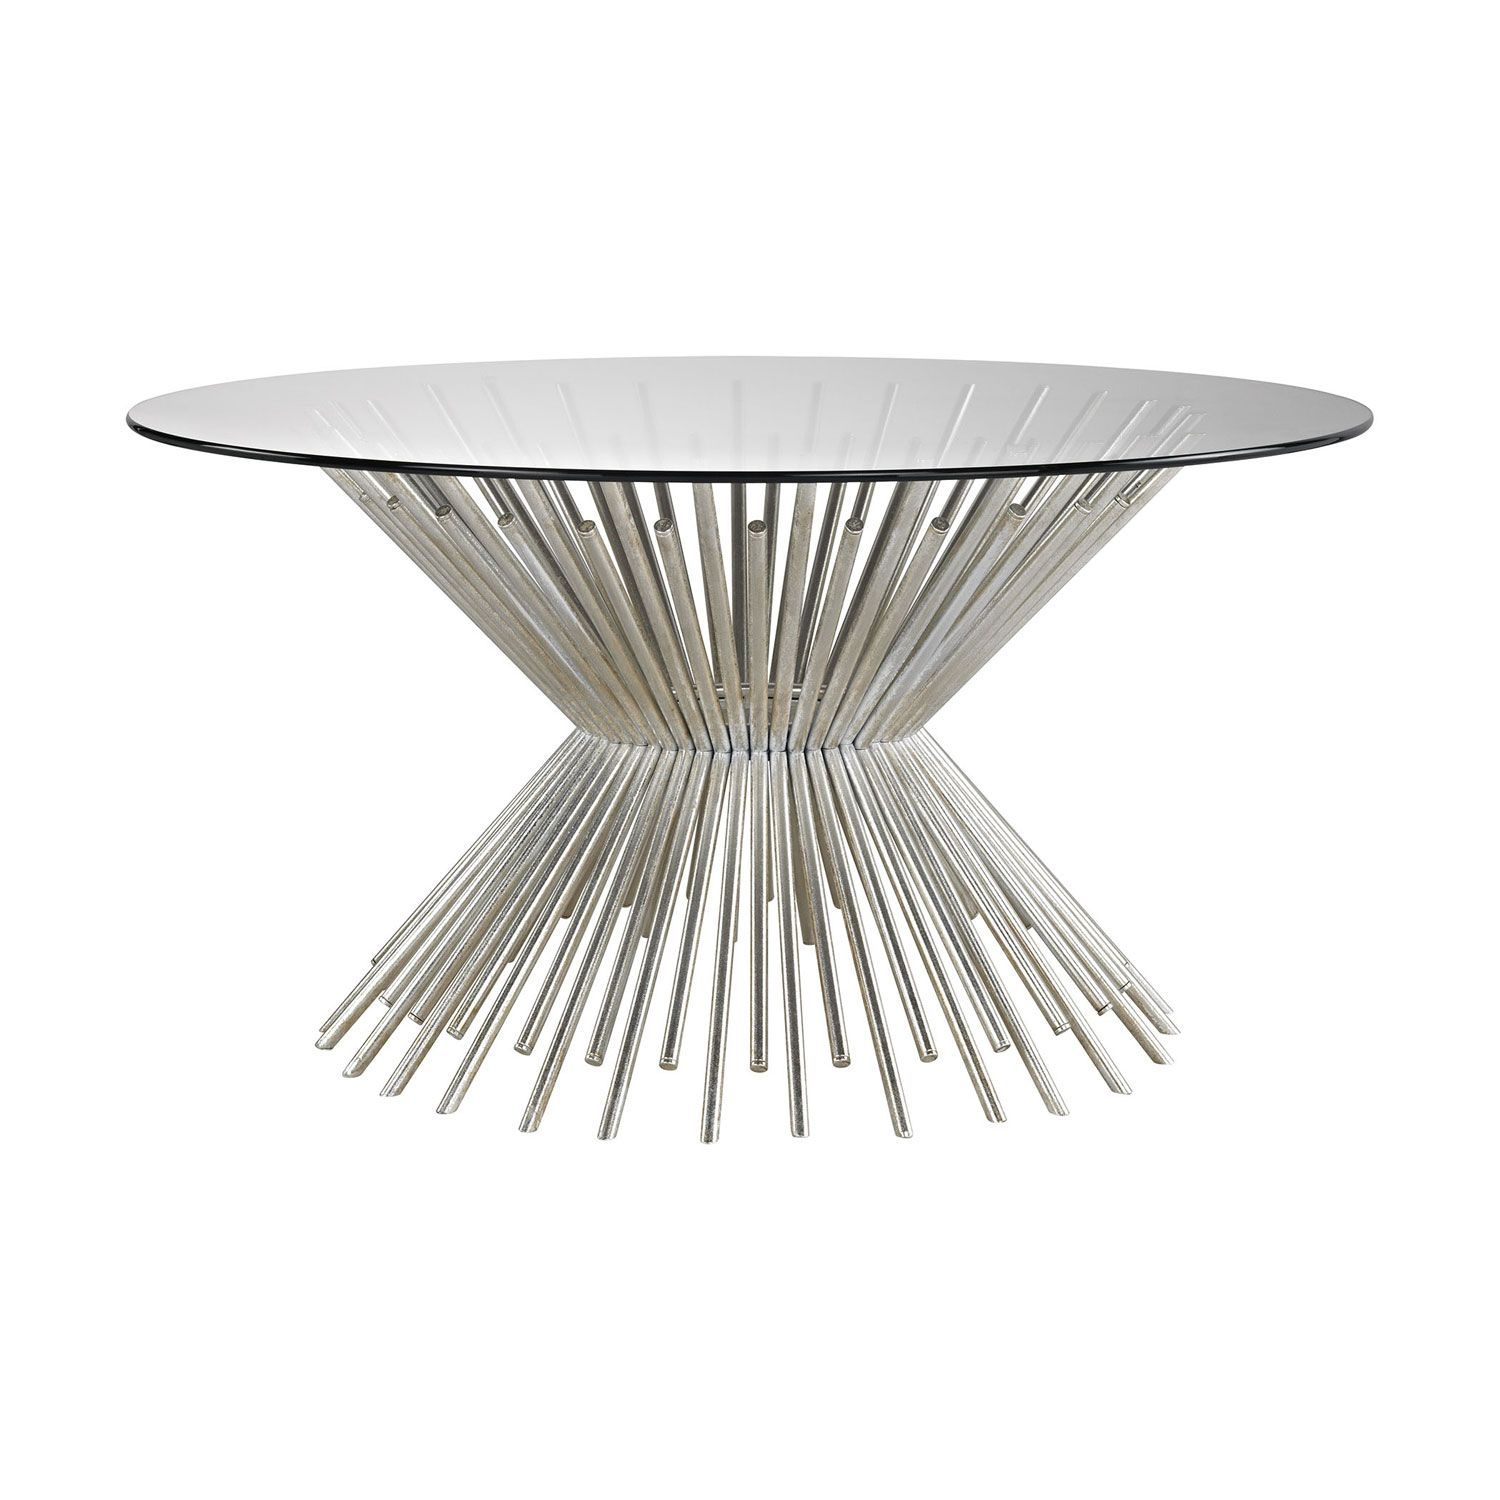 Elk Home Brussels Champagne Gold Coffee Table 1114 230 Bellacor In 2021 Round Glass Coffee Table Silver Coffee Table Coffee Table [ 1500 x 1500 Pixel ]